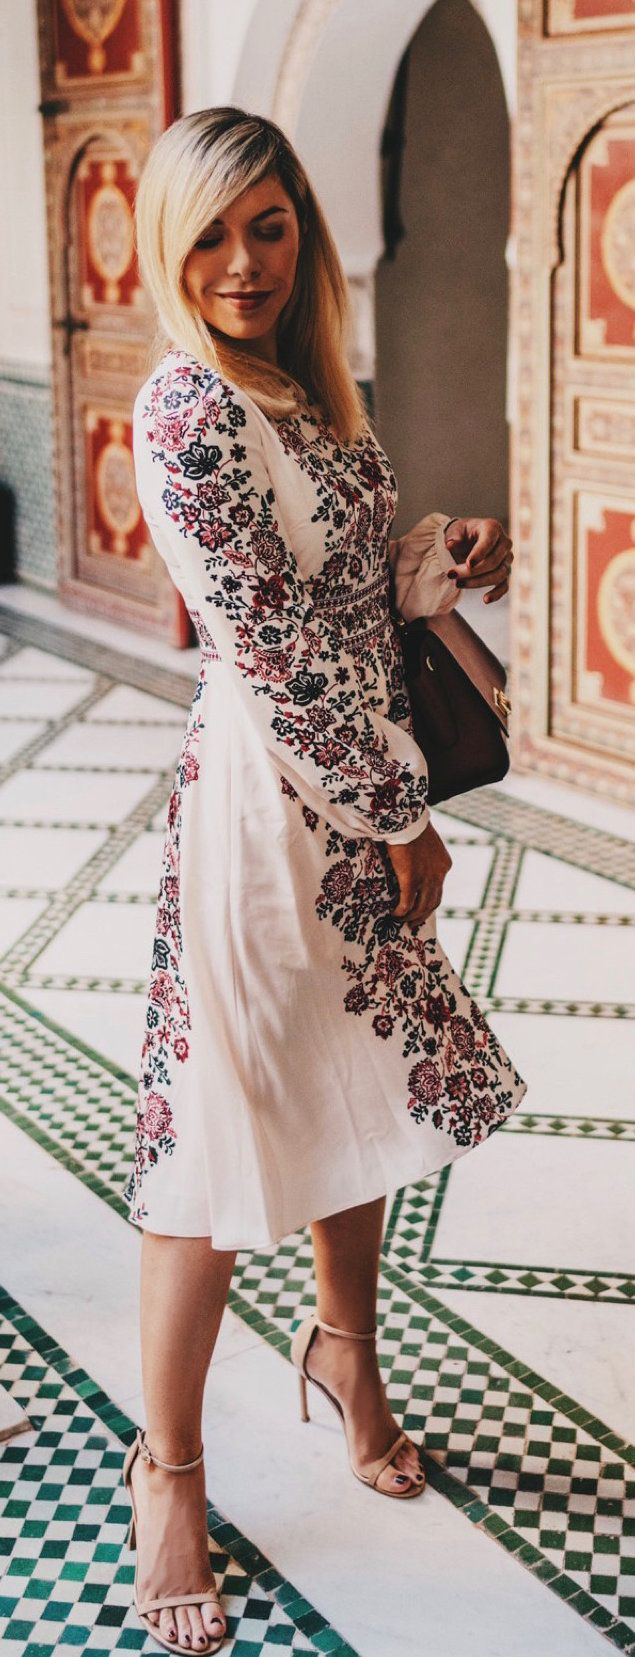 white, black, and red floral dress